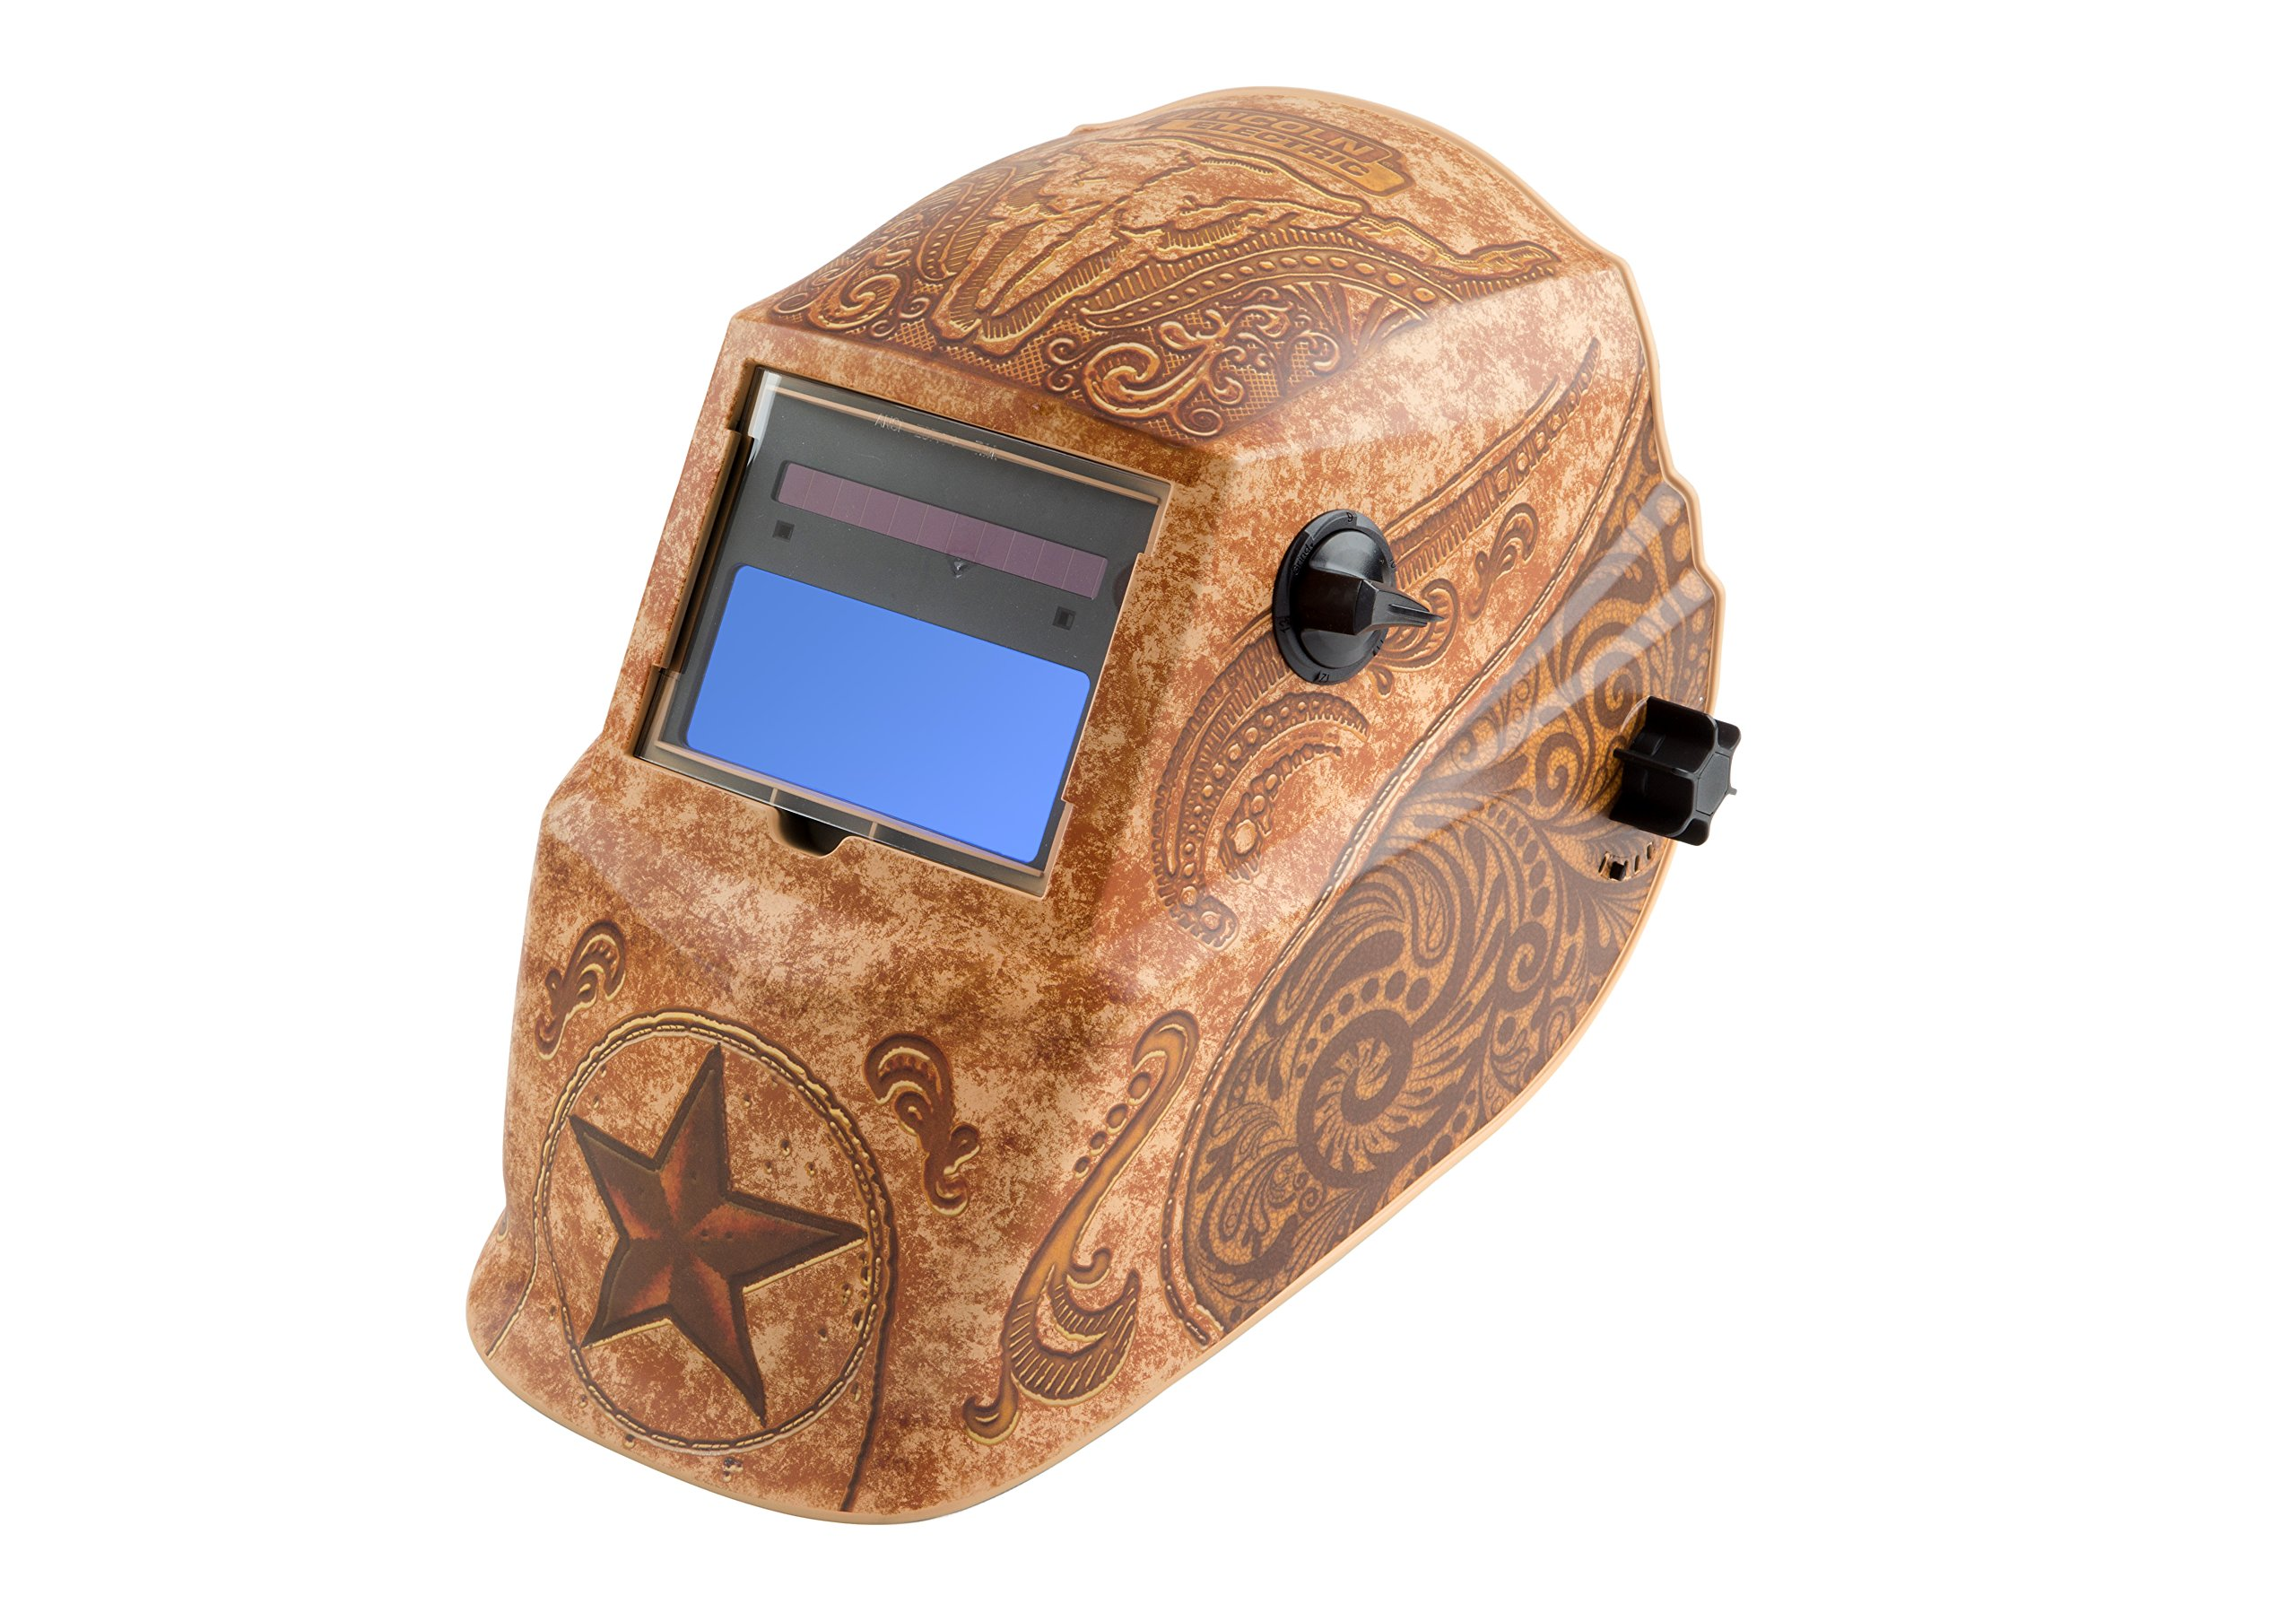 Lincoln Electric K4134-1 Lone Star Auto Darkening Welding Helmet with Grind Mode by Lincoln Electric